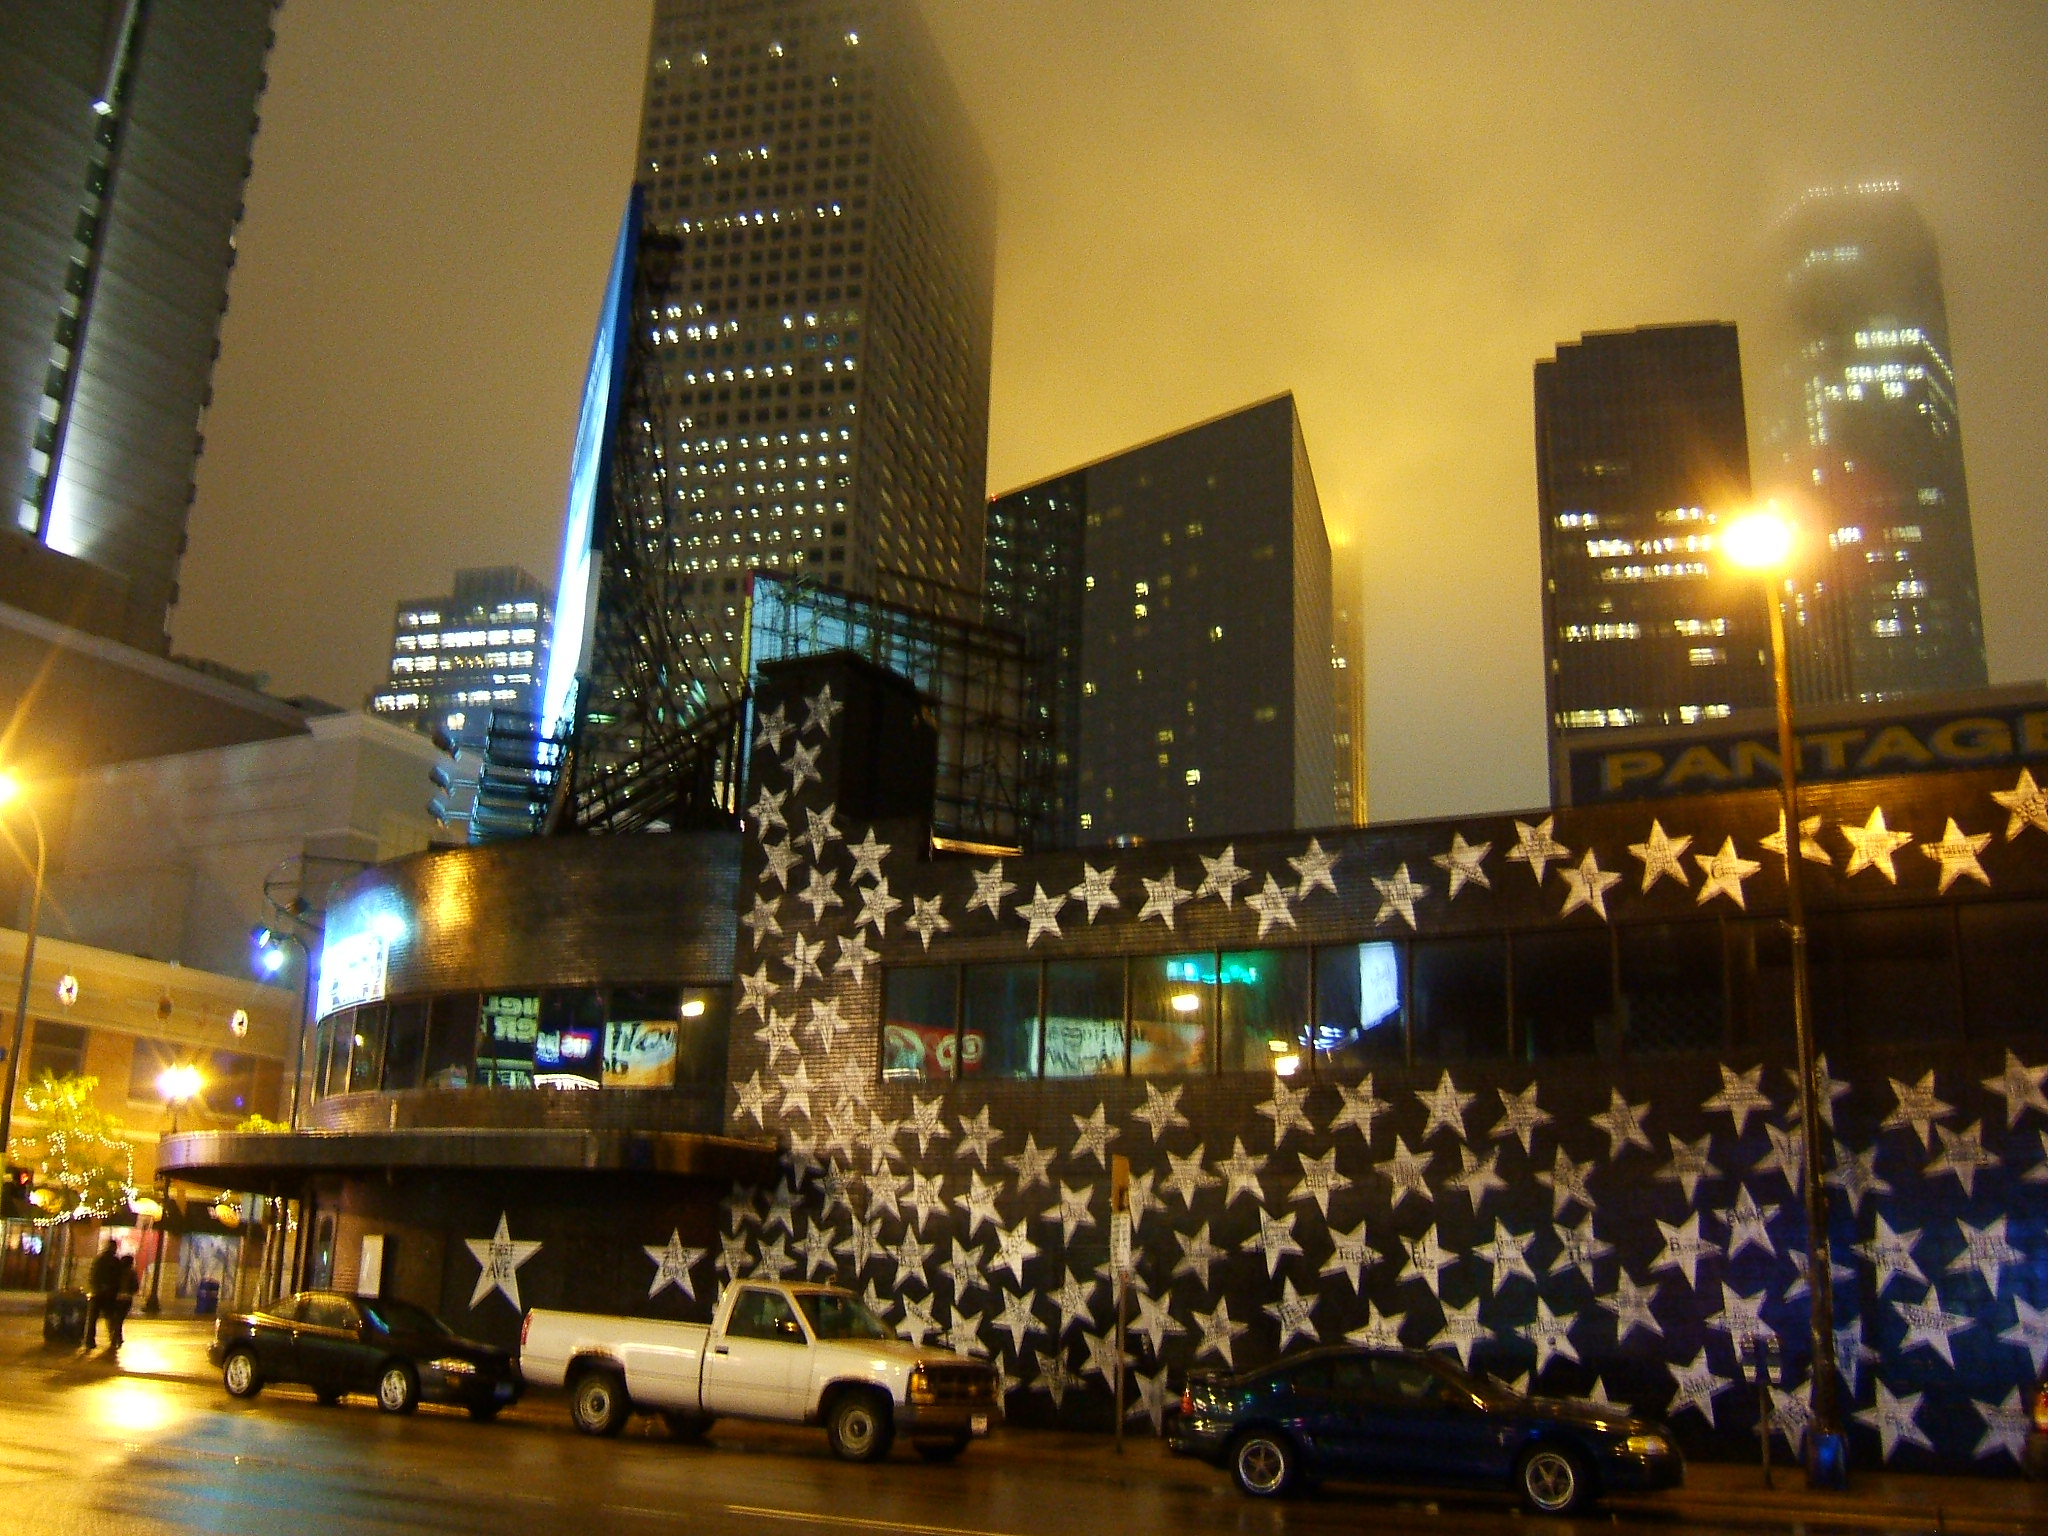 Outside of First Avenue at night with skyline in backdrop